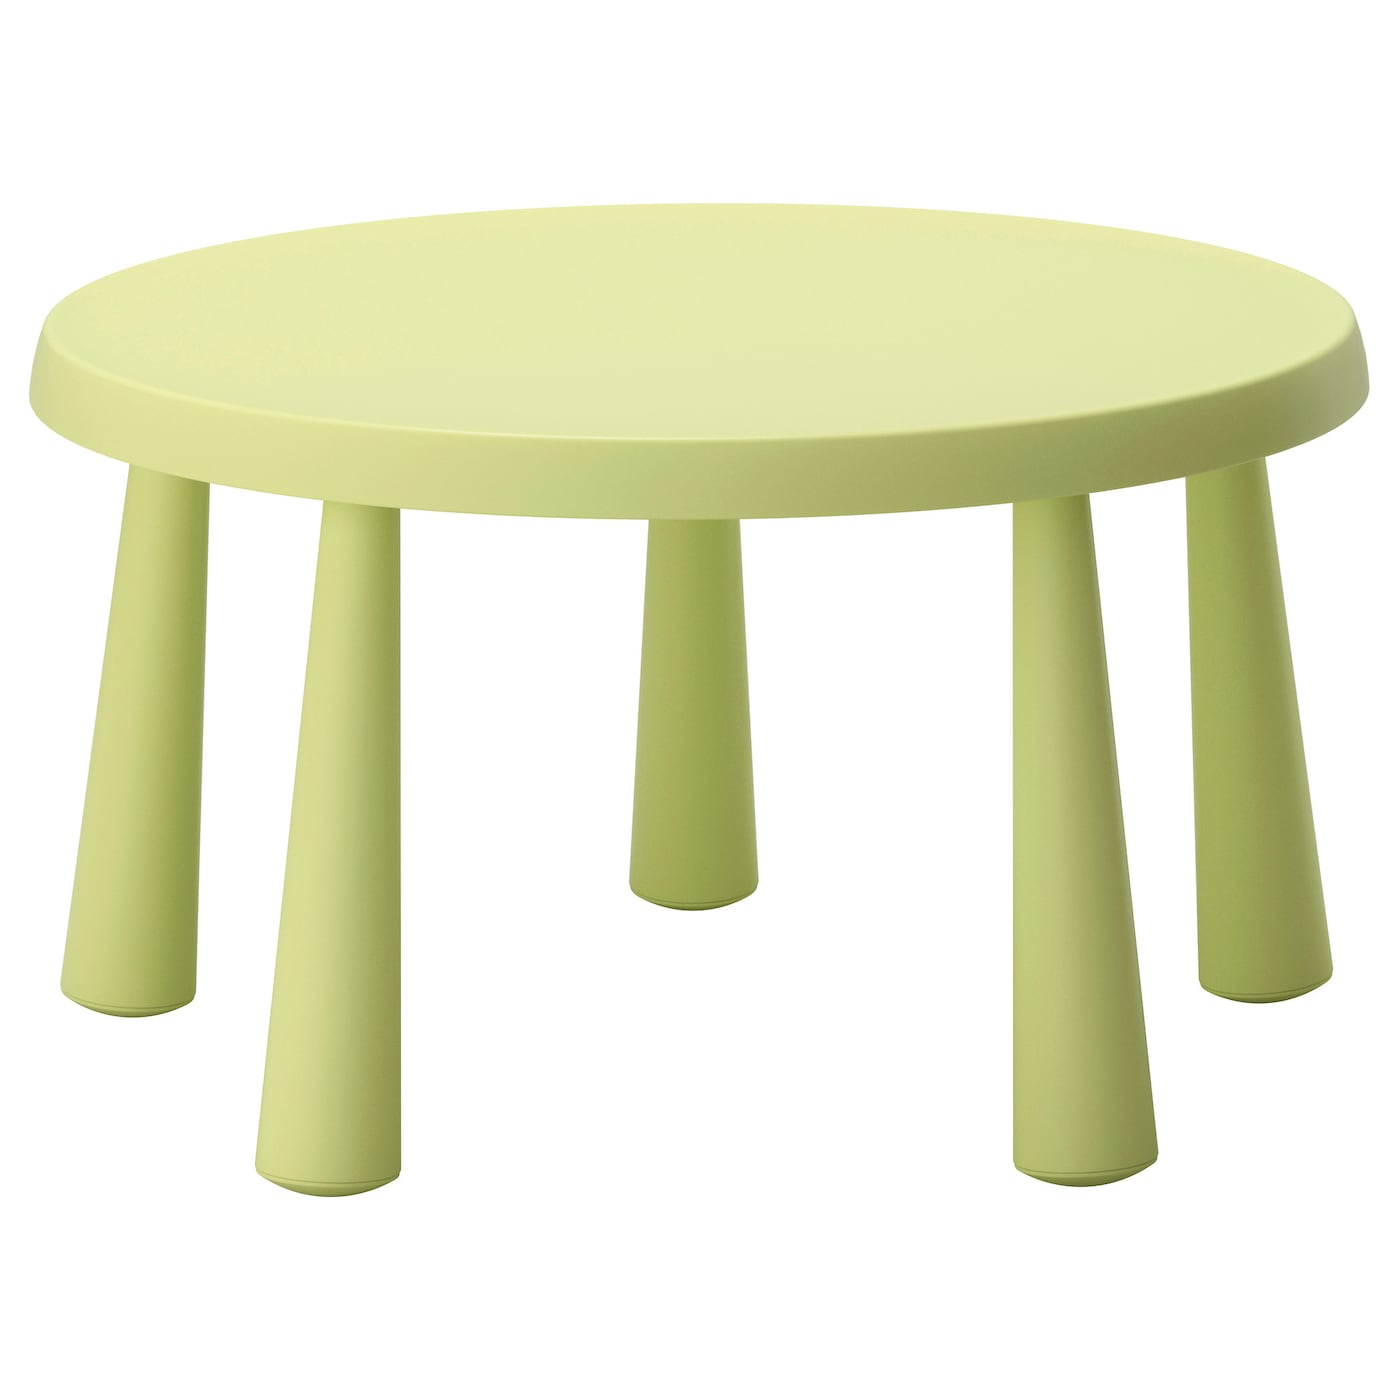 mammut children 39 s table in outdoor light green 85 cm ikea. Black Bedroom Furniture Sets. Home Design Ideas